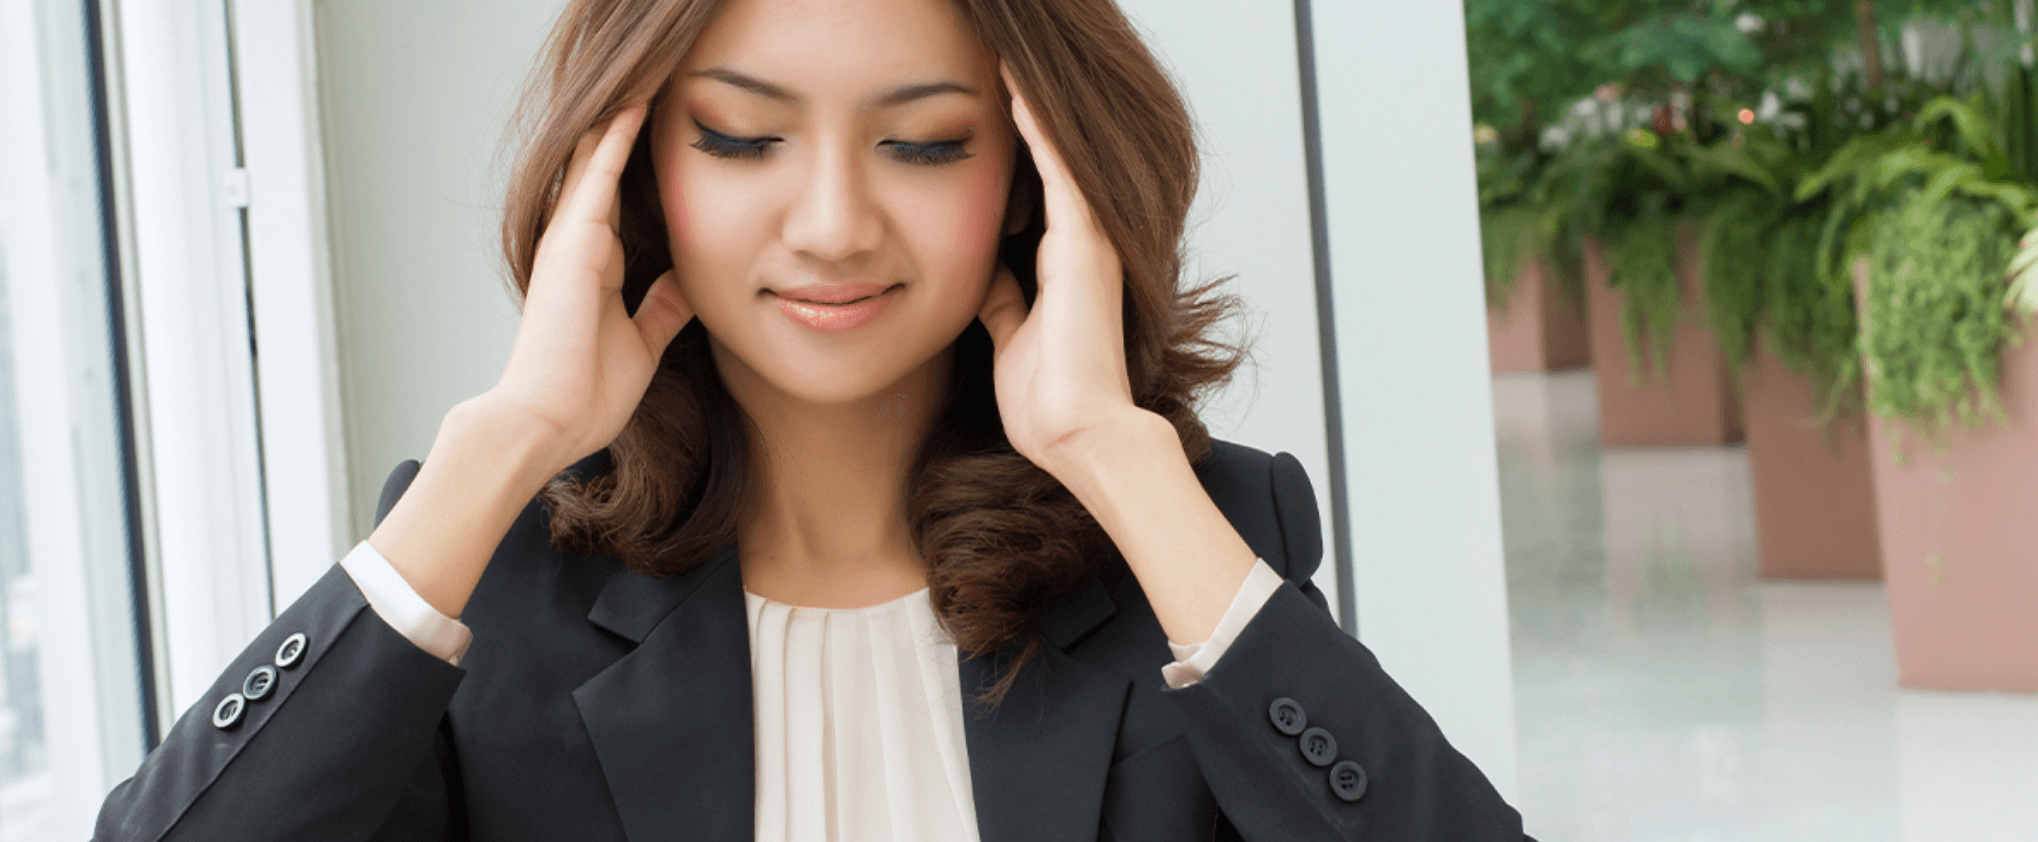 persistent tension headaches